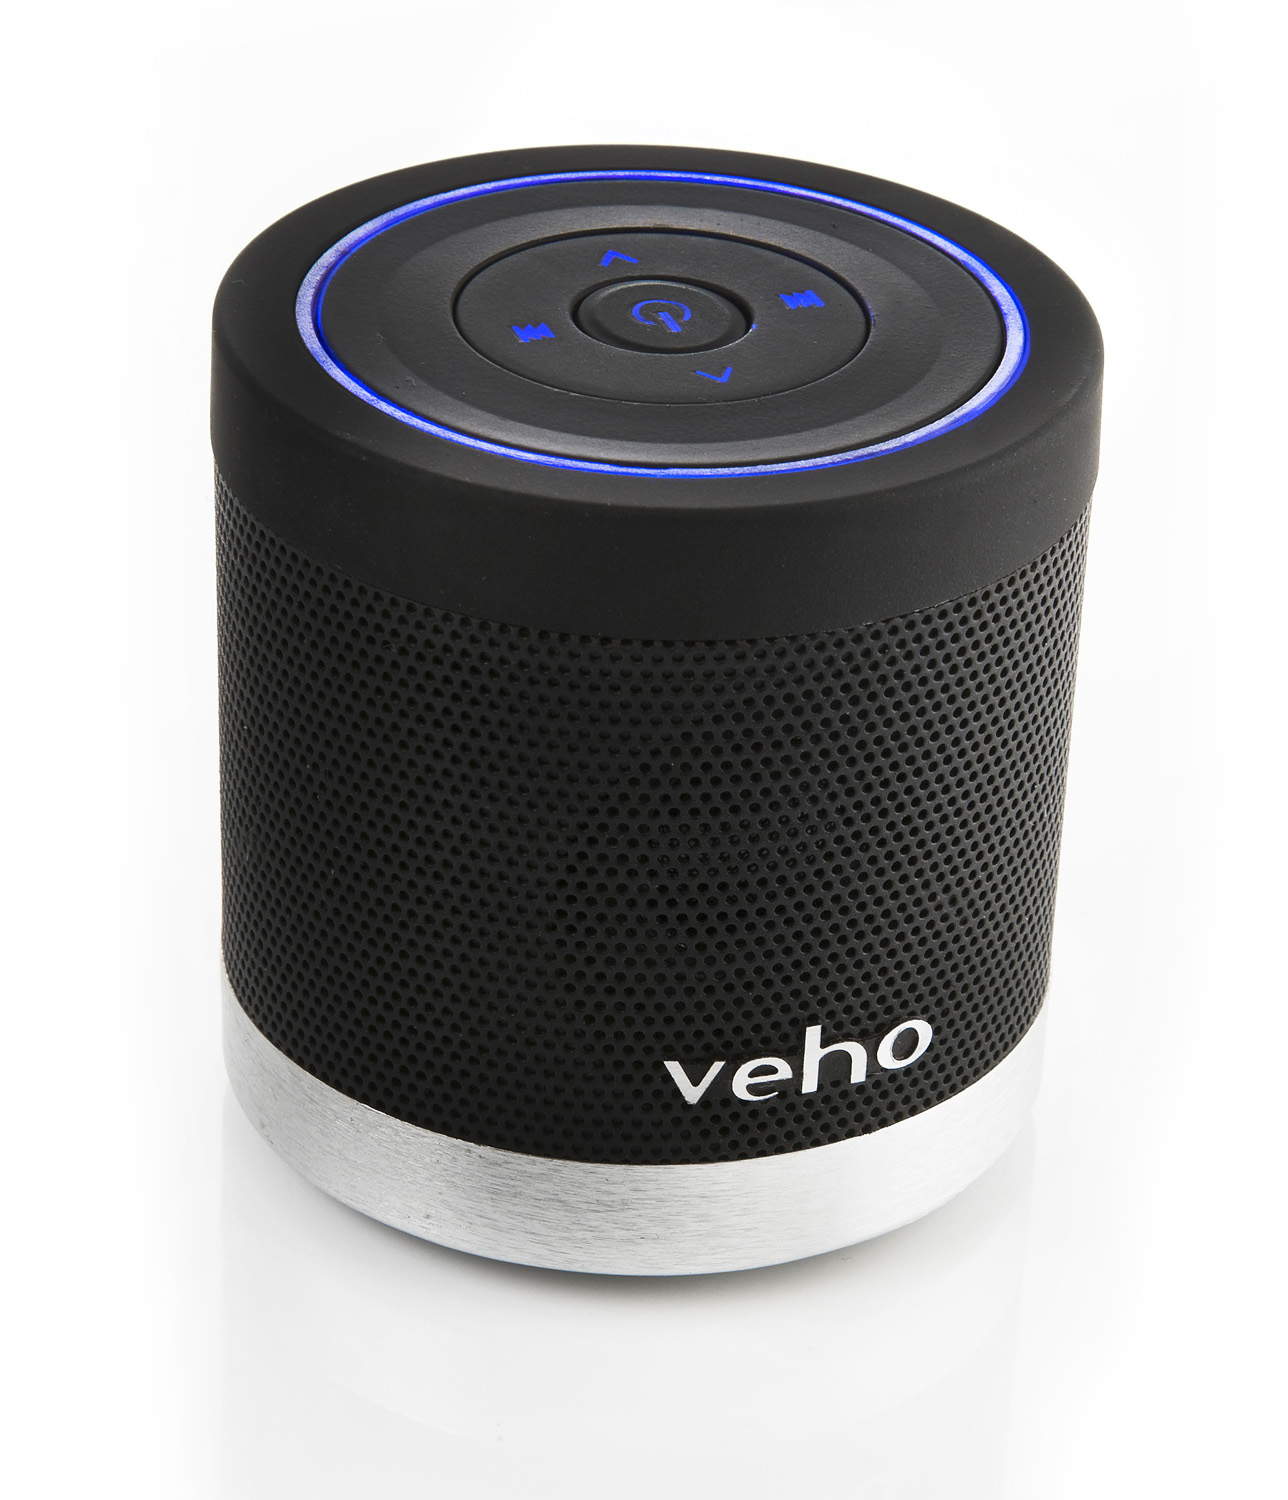 Image for Veho 360 M4 Bluetooth Wireless Speaker - Speaker - For Portable Use - Wireless from Circuit City